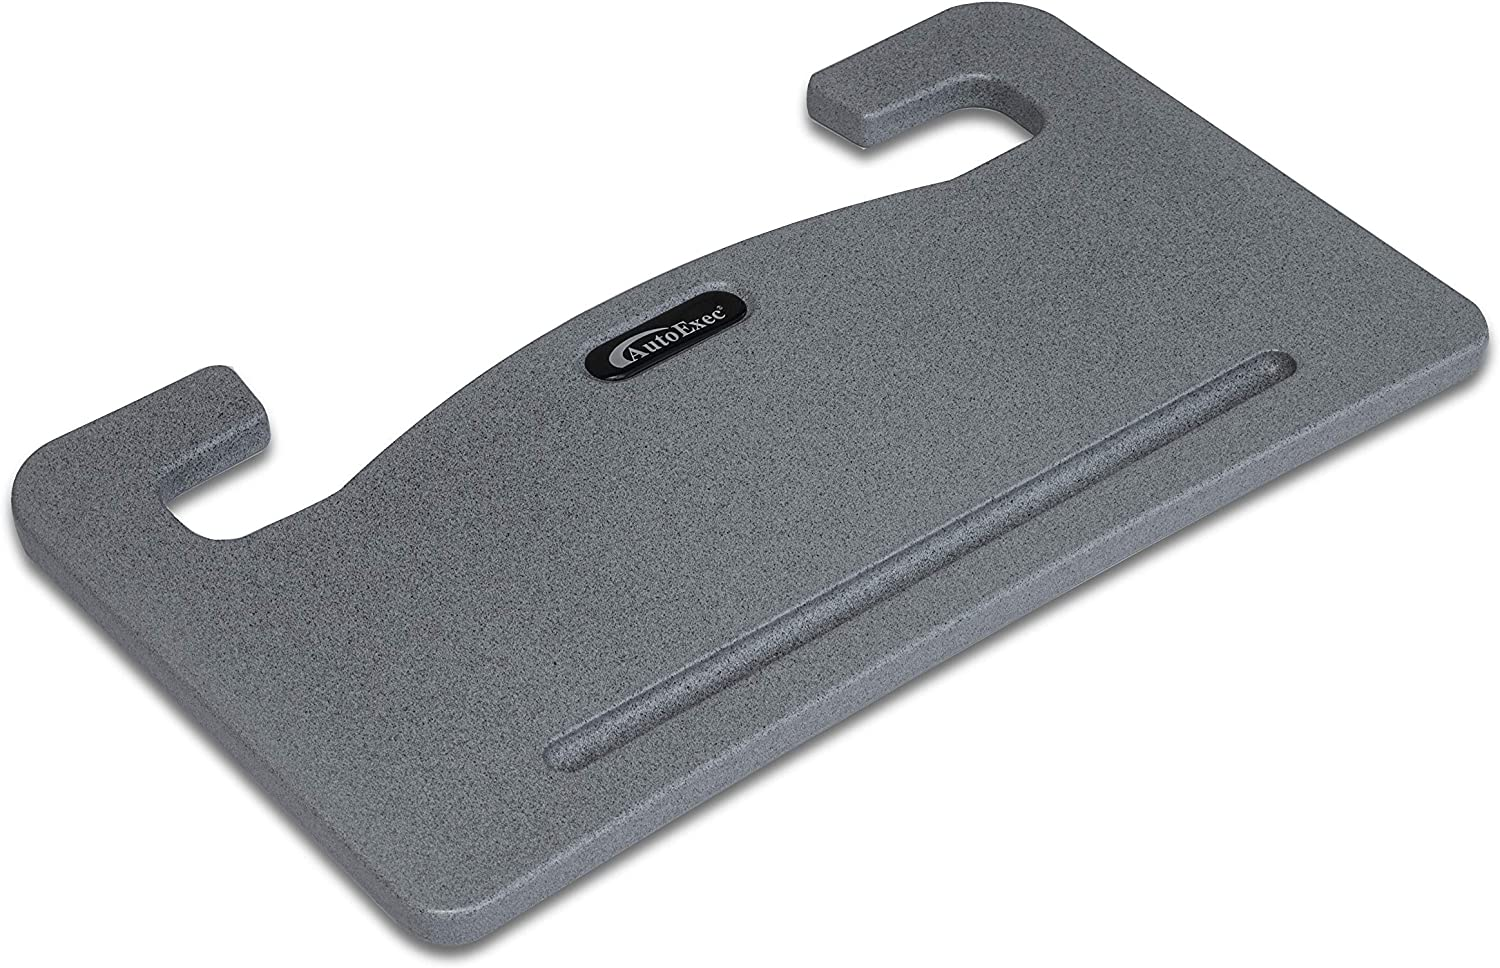 AutoExec AUE13000 Wheelmate Car Desk Grey Steering Wheel Tray for Laptop, Writing Space and Eating on The Go